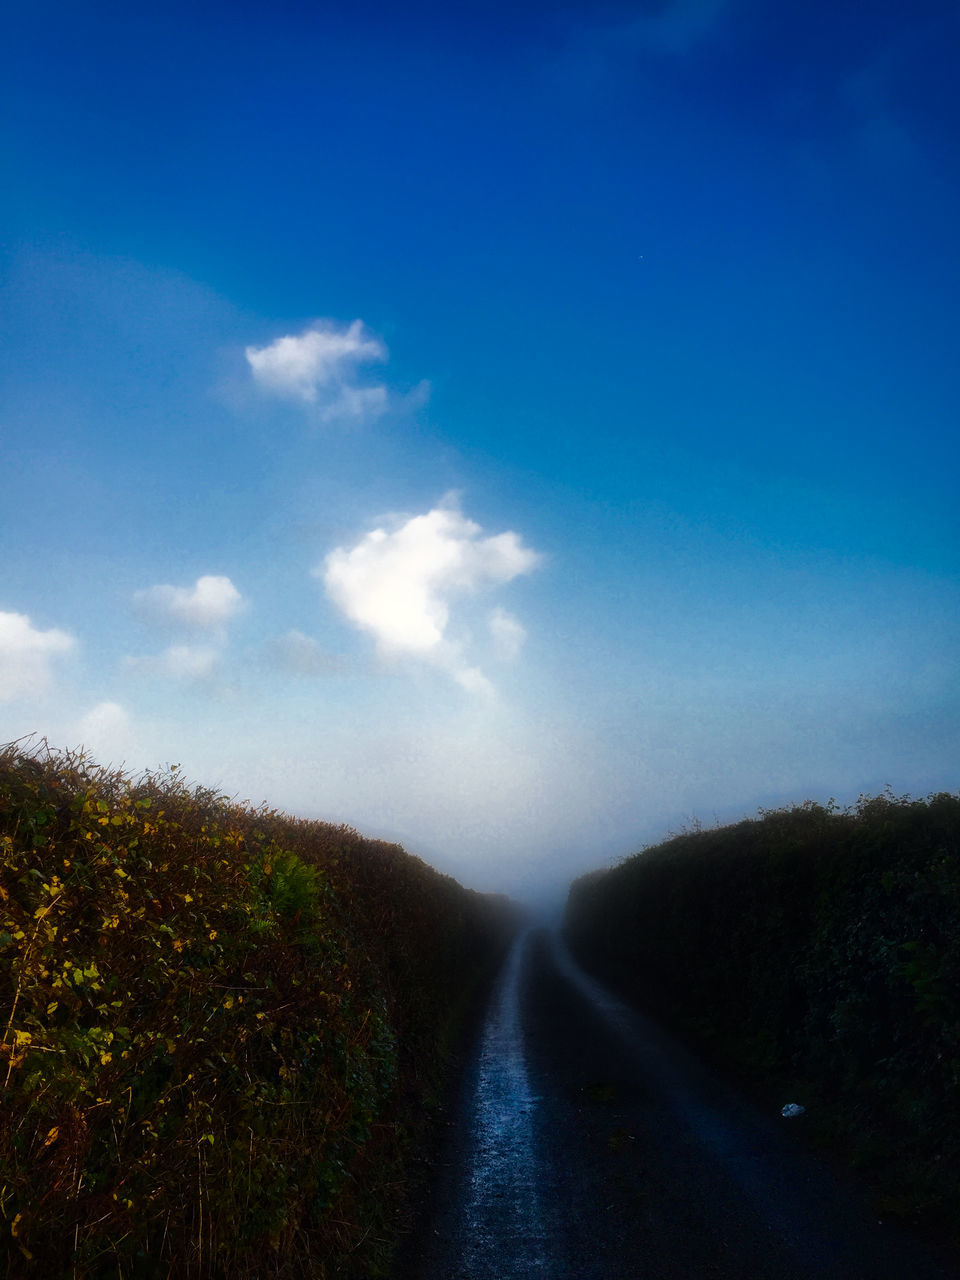 road, the way forward, nature, landscape, scenics, tranquil scene, sky, transportation, outdoors, beauty in nature, no people, day, growth, tranquility, plant, blue, tree